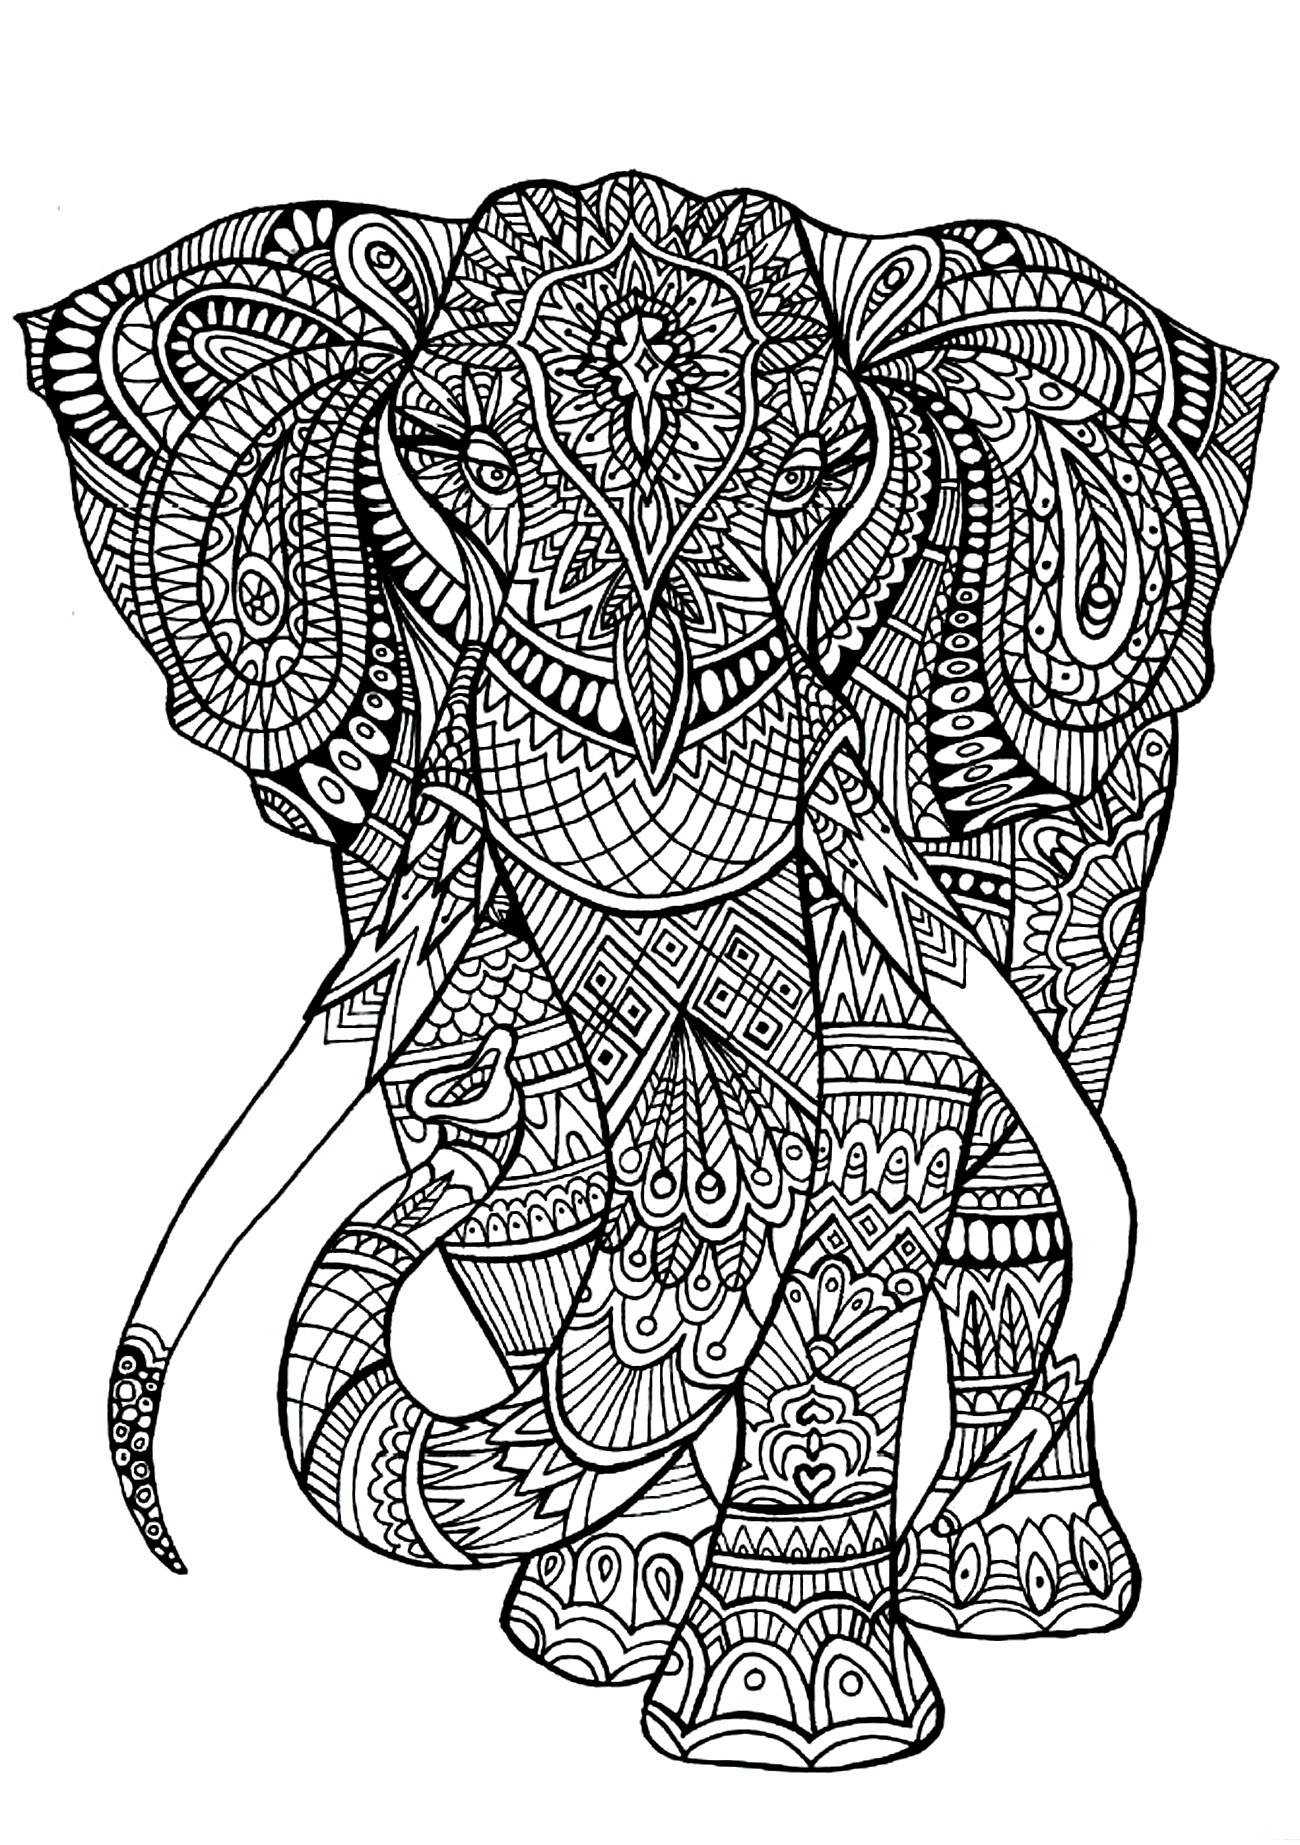 Elephant coloriages d 39 animaux 100 mandalas zen anti - Elephant en dessin ...